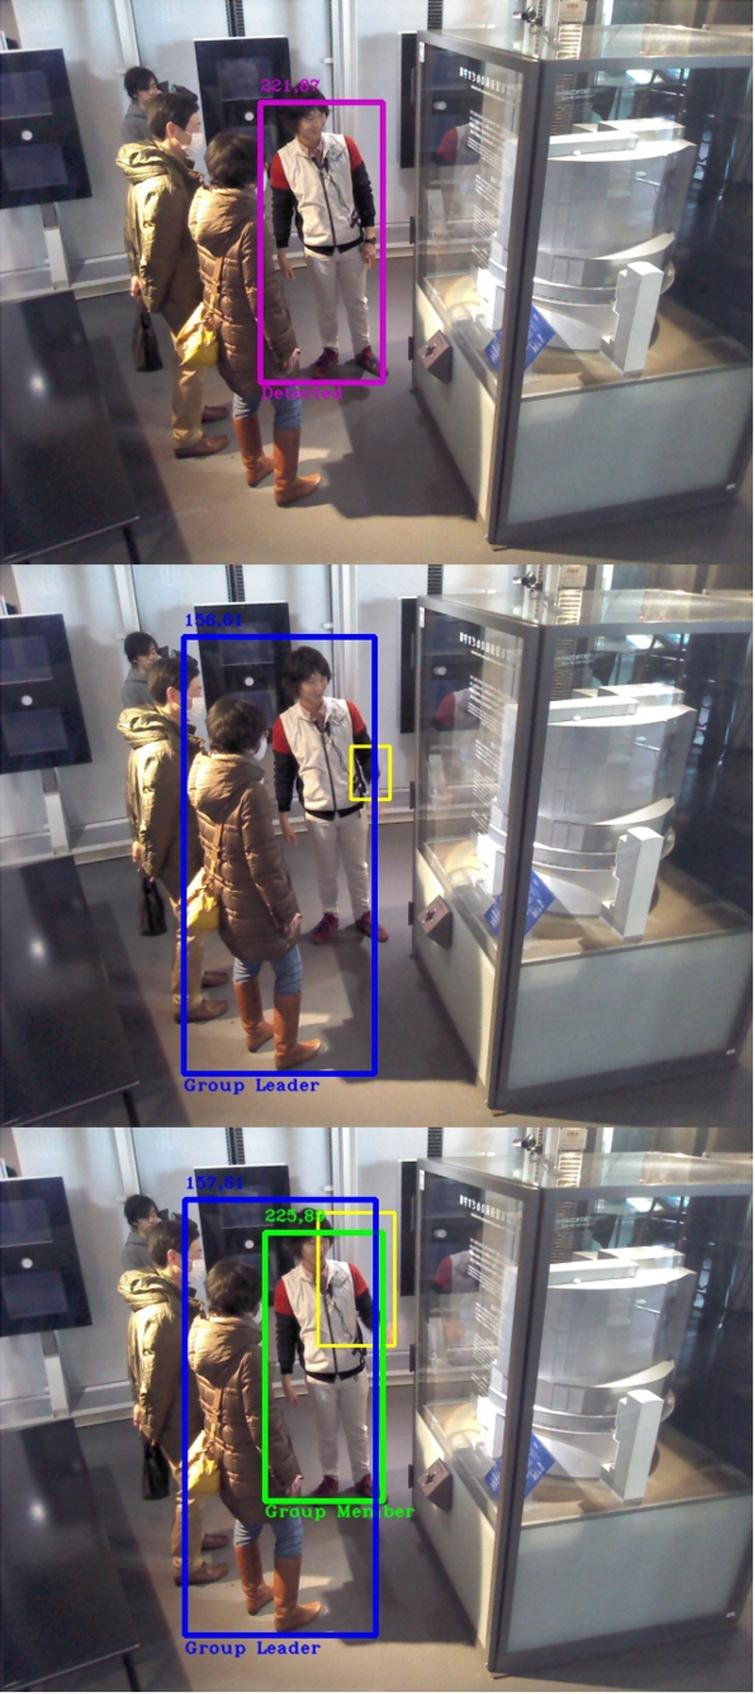 Video 1 with 36% of accuracy. Top: Frame 1, science communicator has been detected, no role assigned yet. Middle: Frame 4, science communicator gestures and motion box overlaps with the only detection obtained, selecting a museum visitor as the group leader. Bottom: Frame 6, science communicator is detected after the leader role has been given, appointing him as a group member.